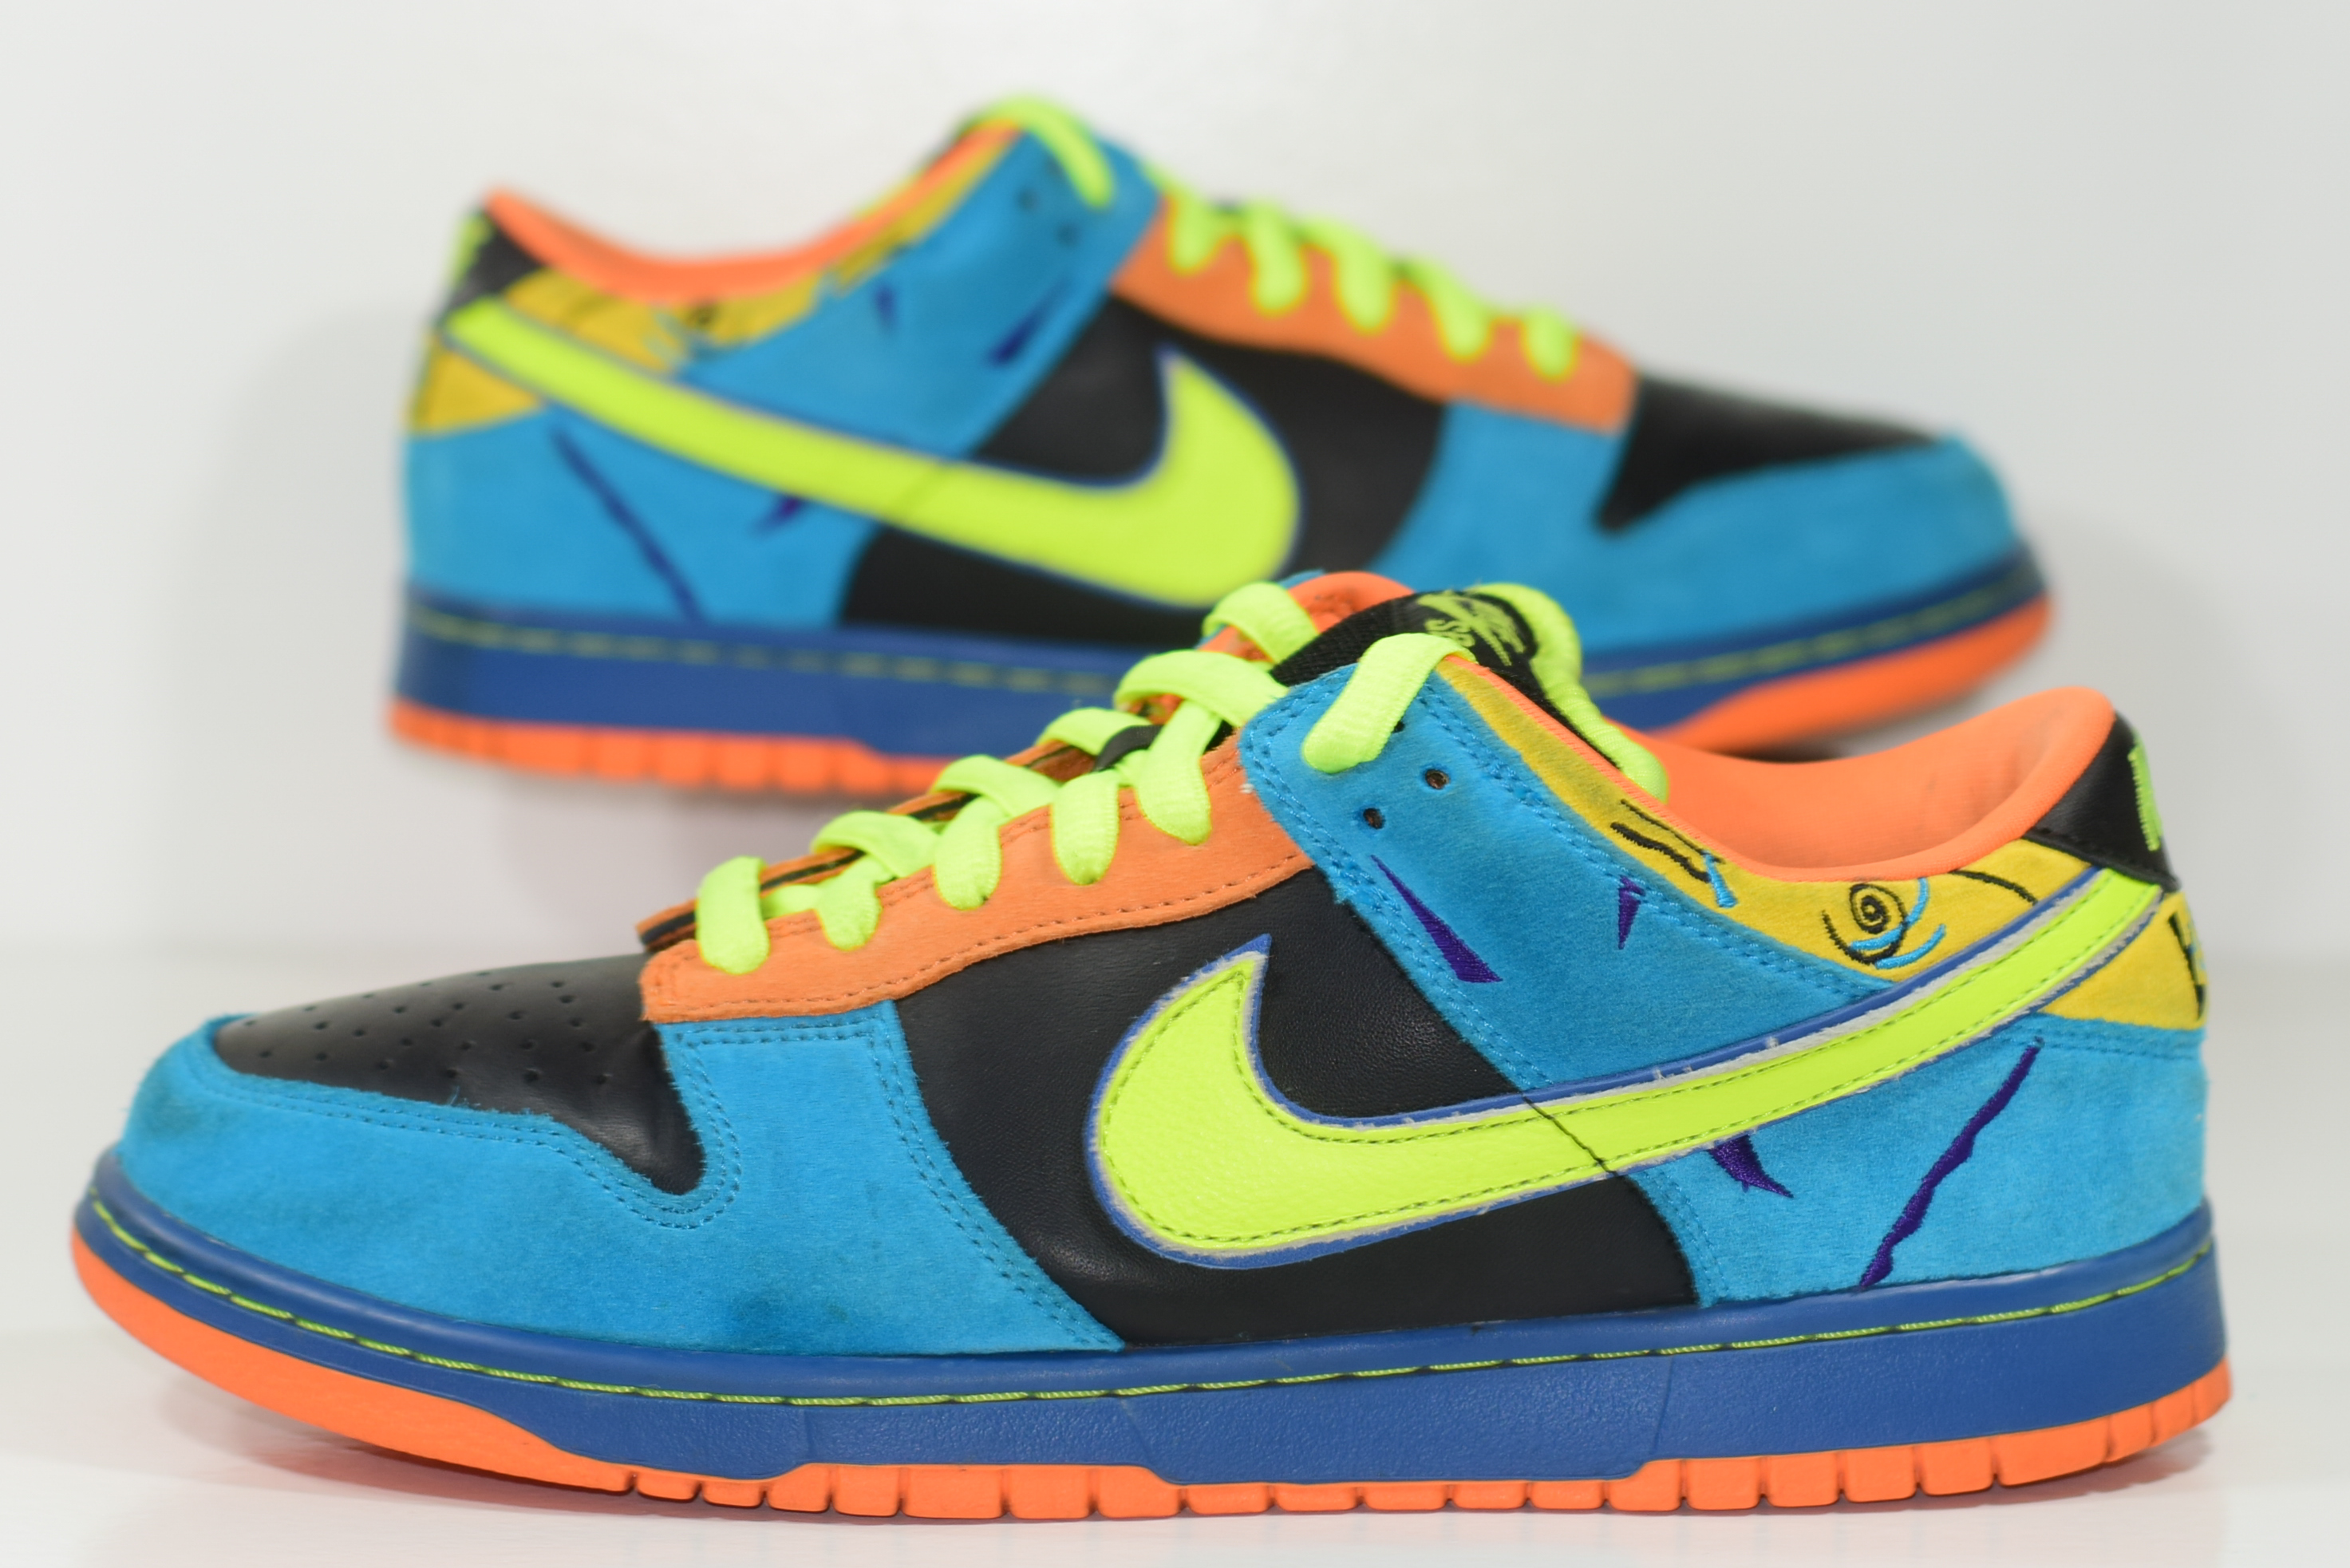 uk availability d12fd 27086 ... greece size 10.5 2008 nike dunk sb low skate or die sod new authentic  rare 52fa6